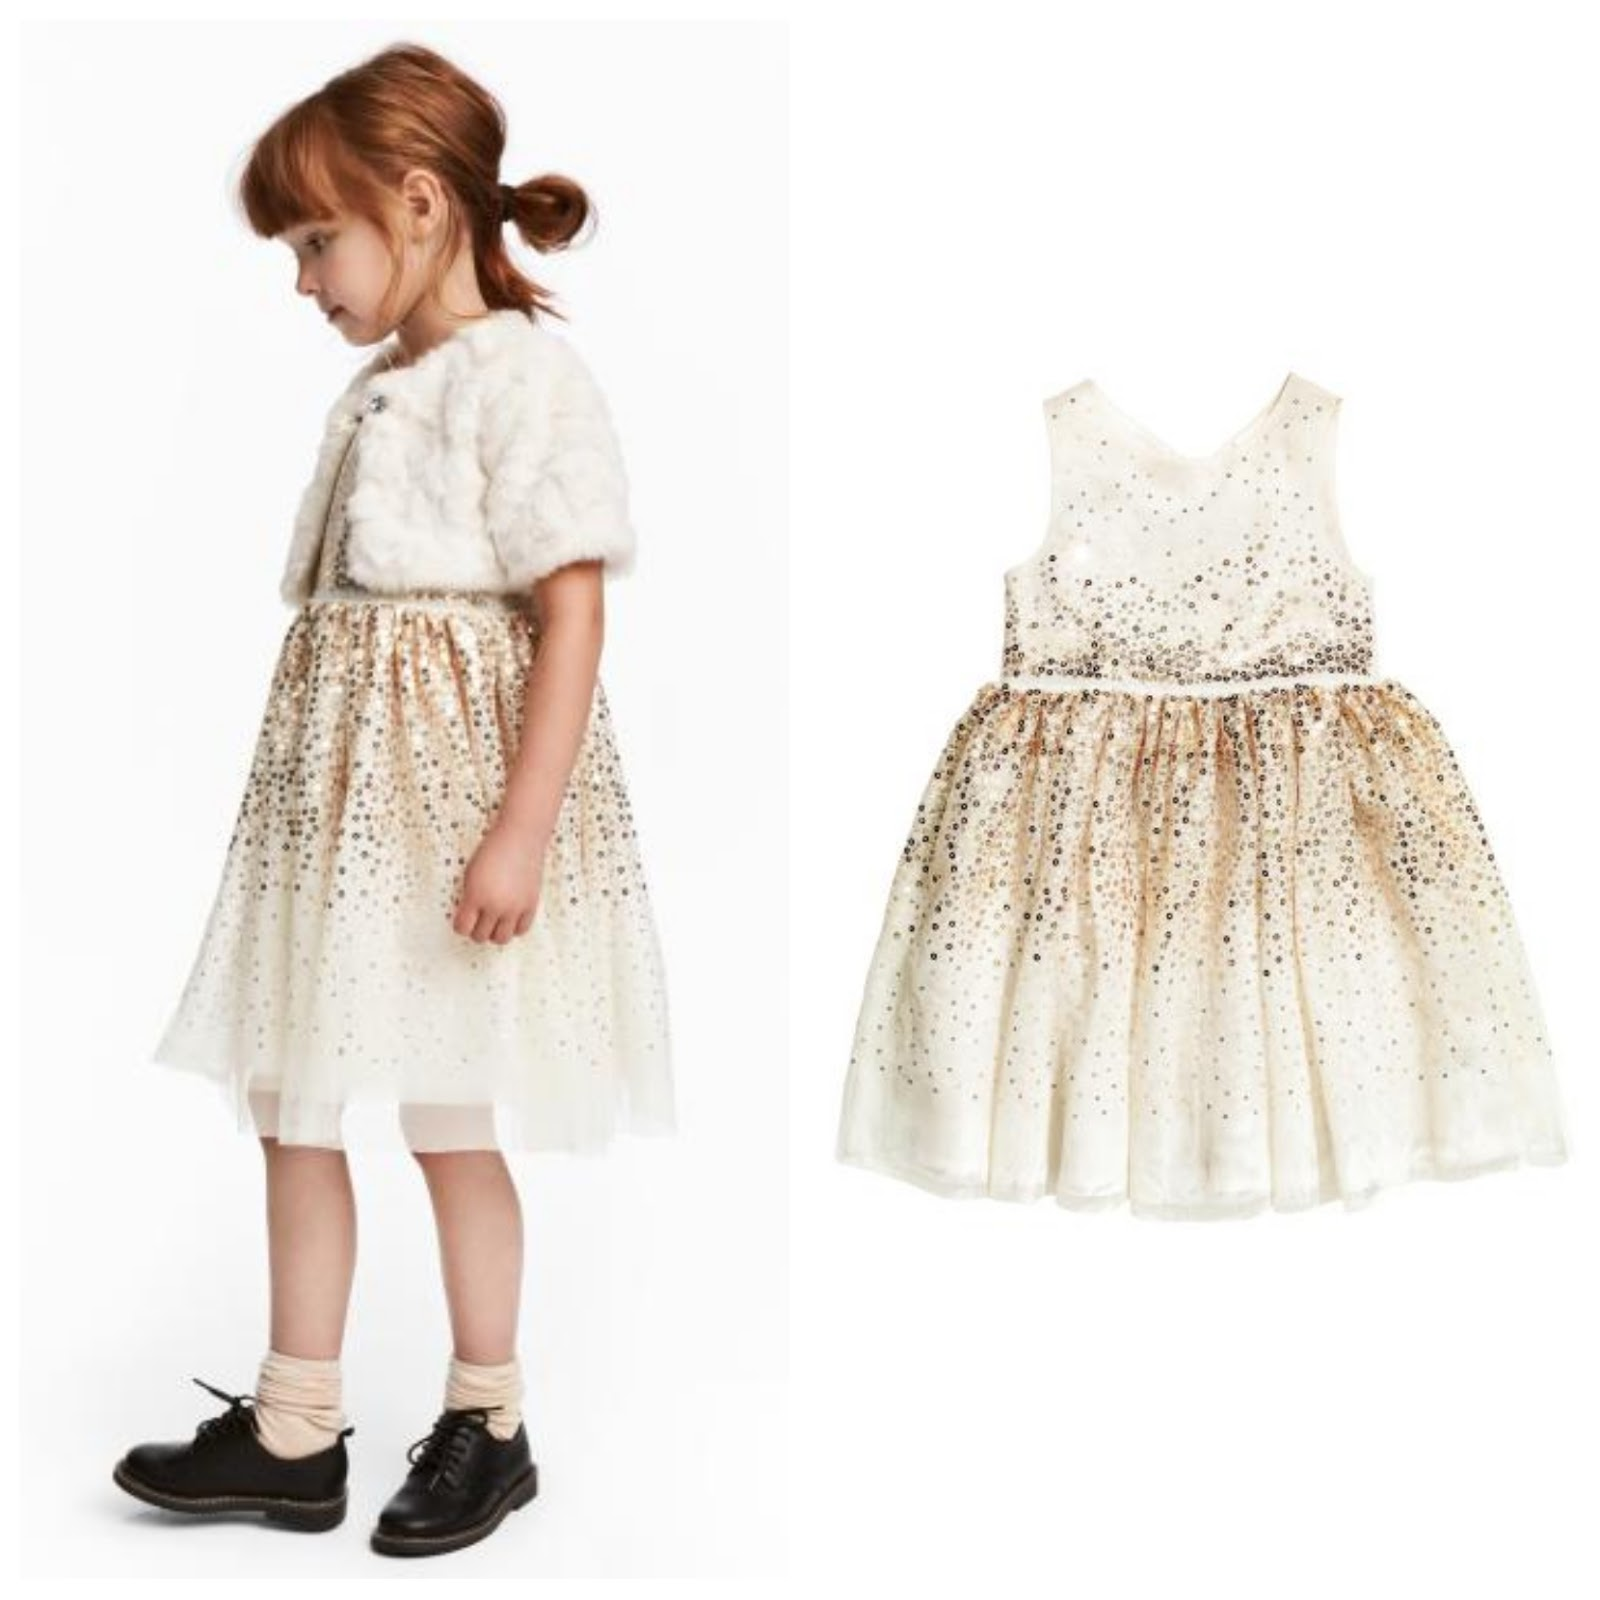 best hm christmas dresses for girls - Hm Christmas